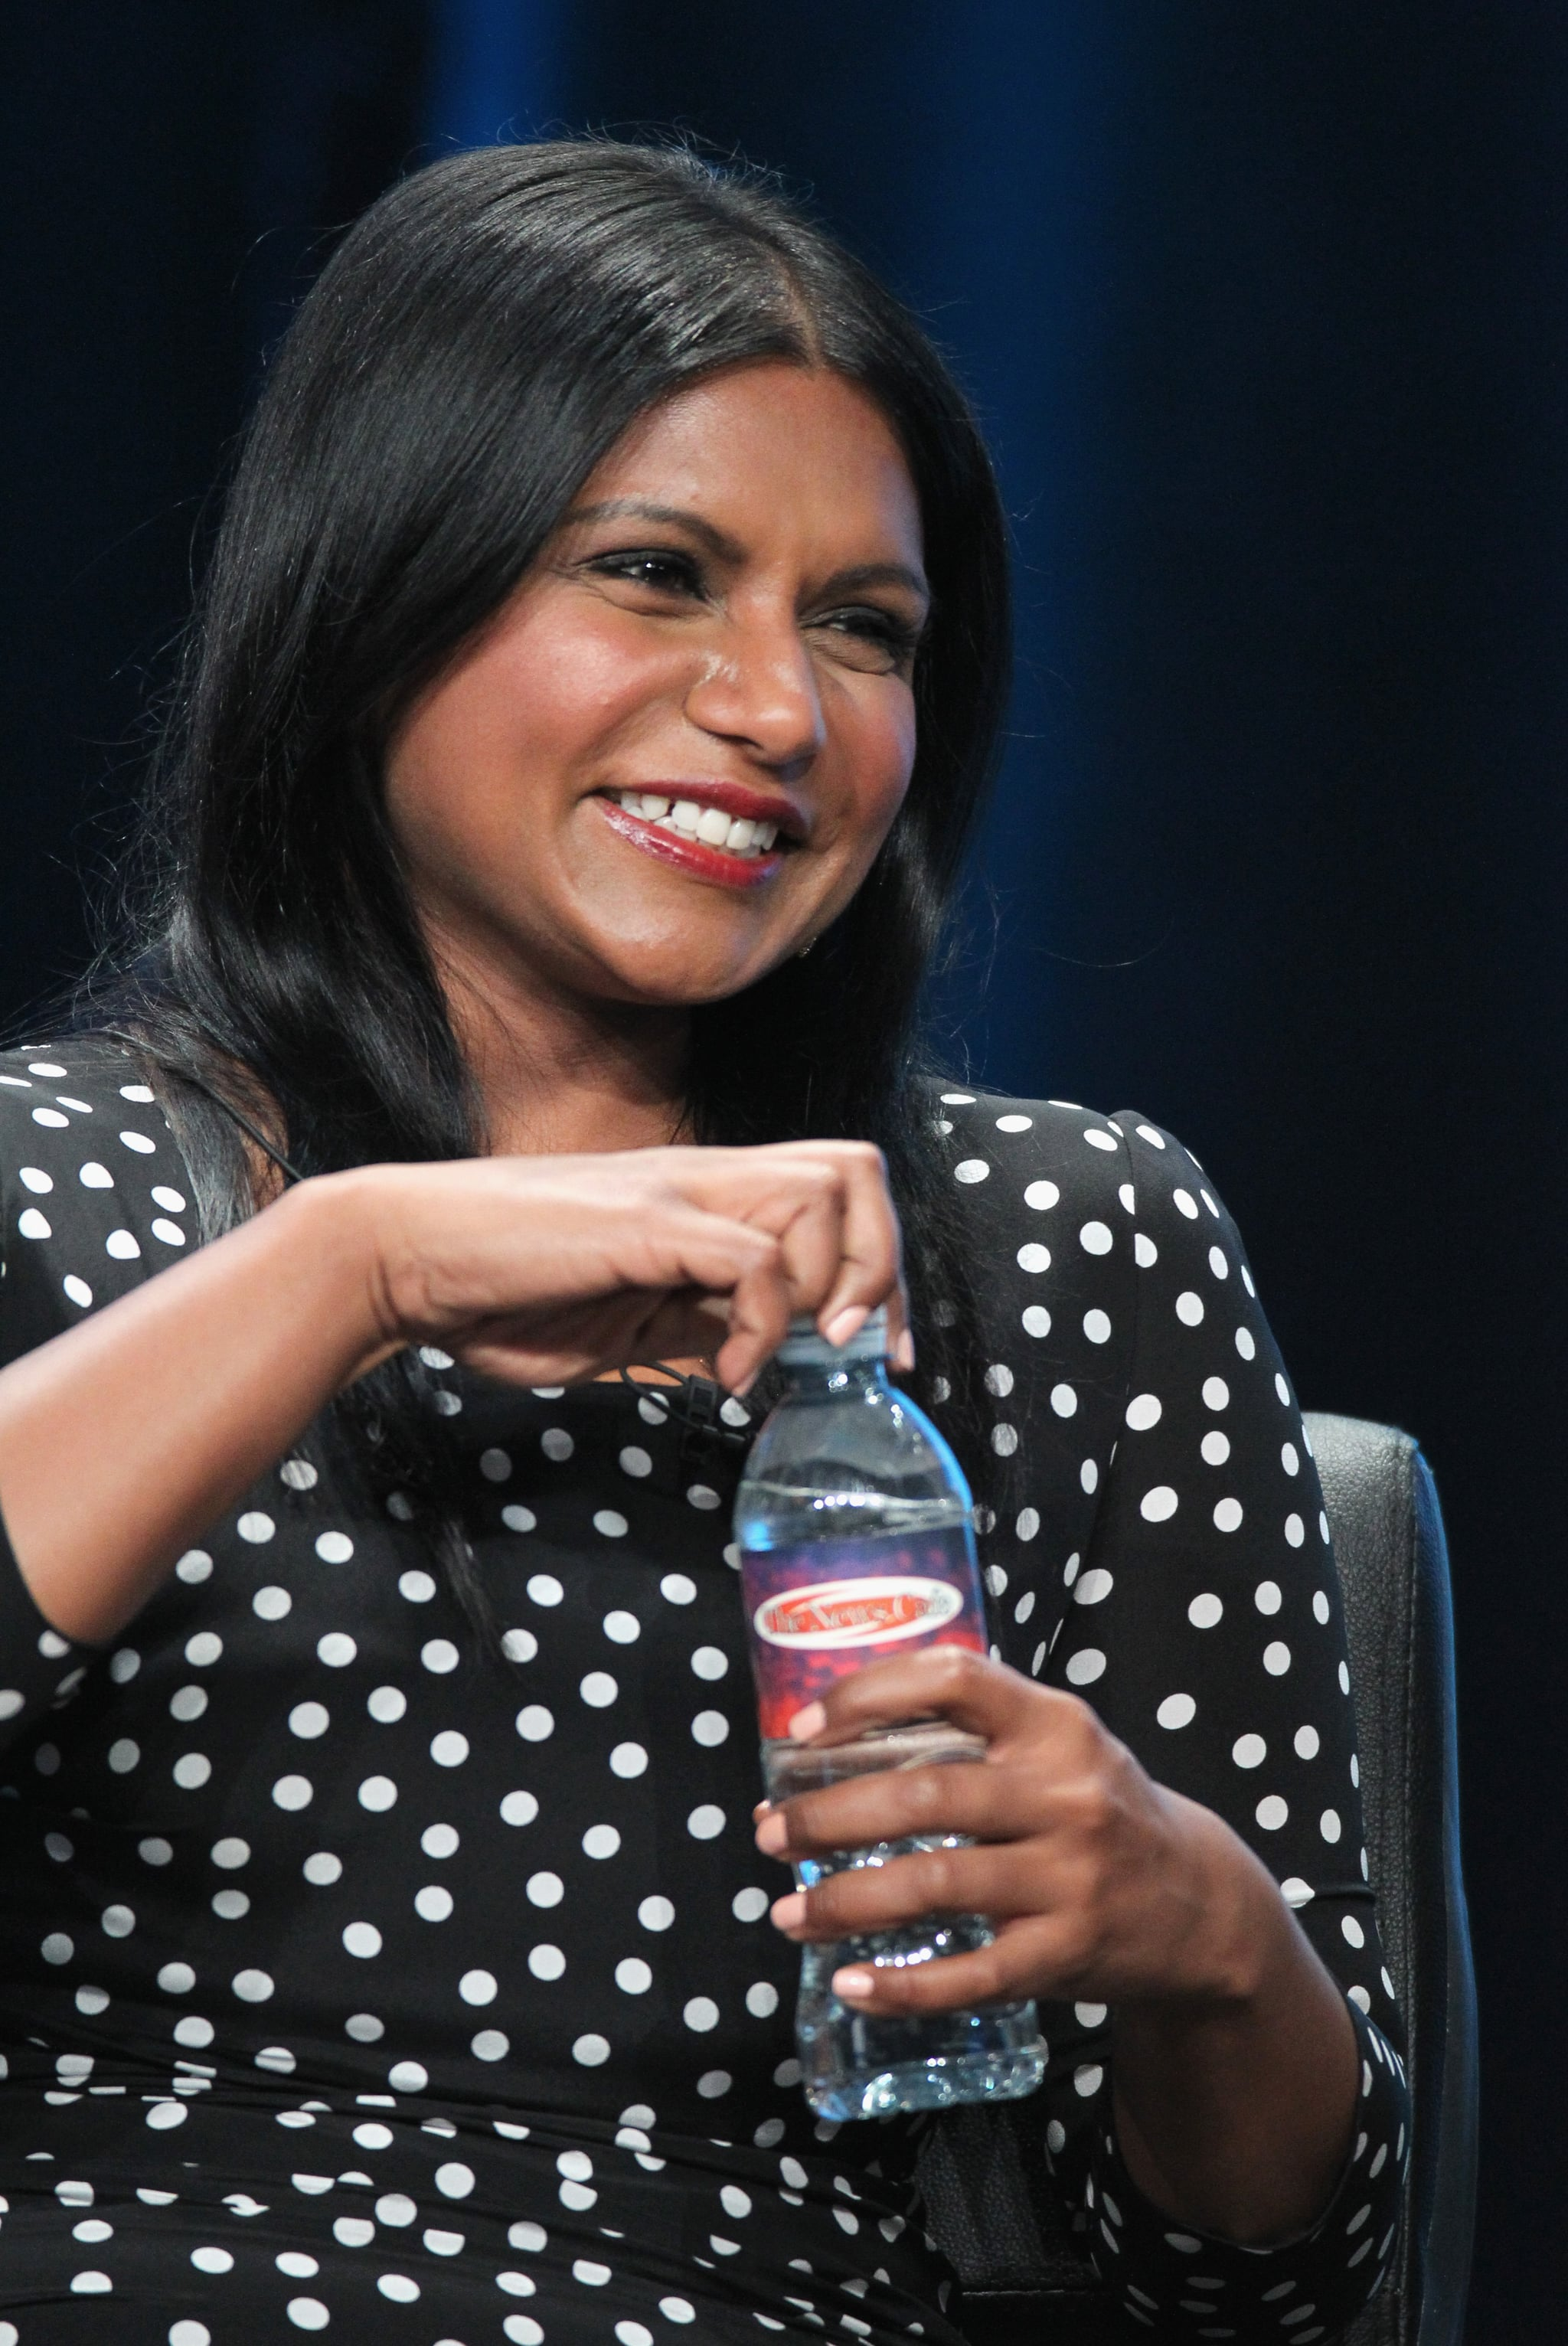 Not only is Mindy Kaling the star of The Mindy Project, she&#039;s also the creator and the executive producer.</p> <p>